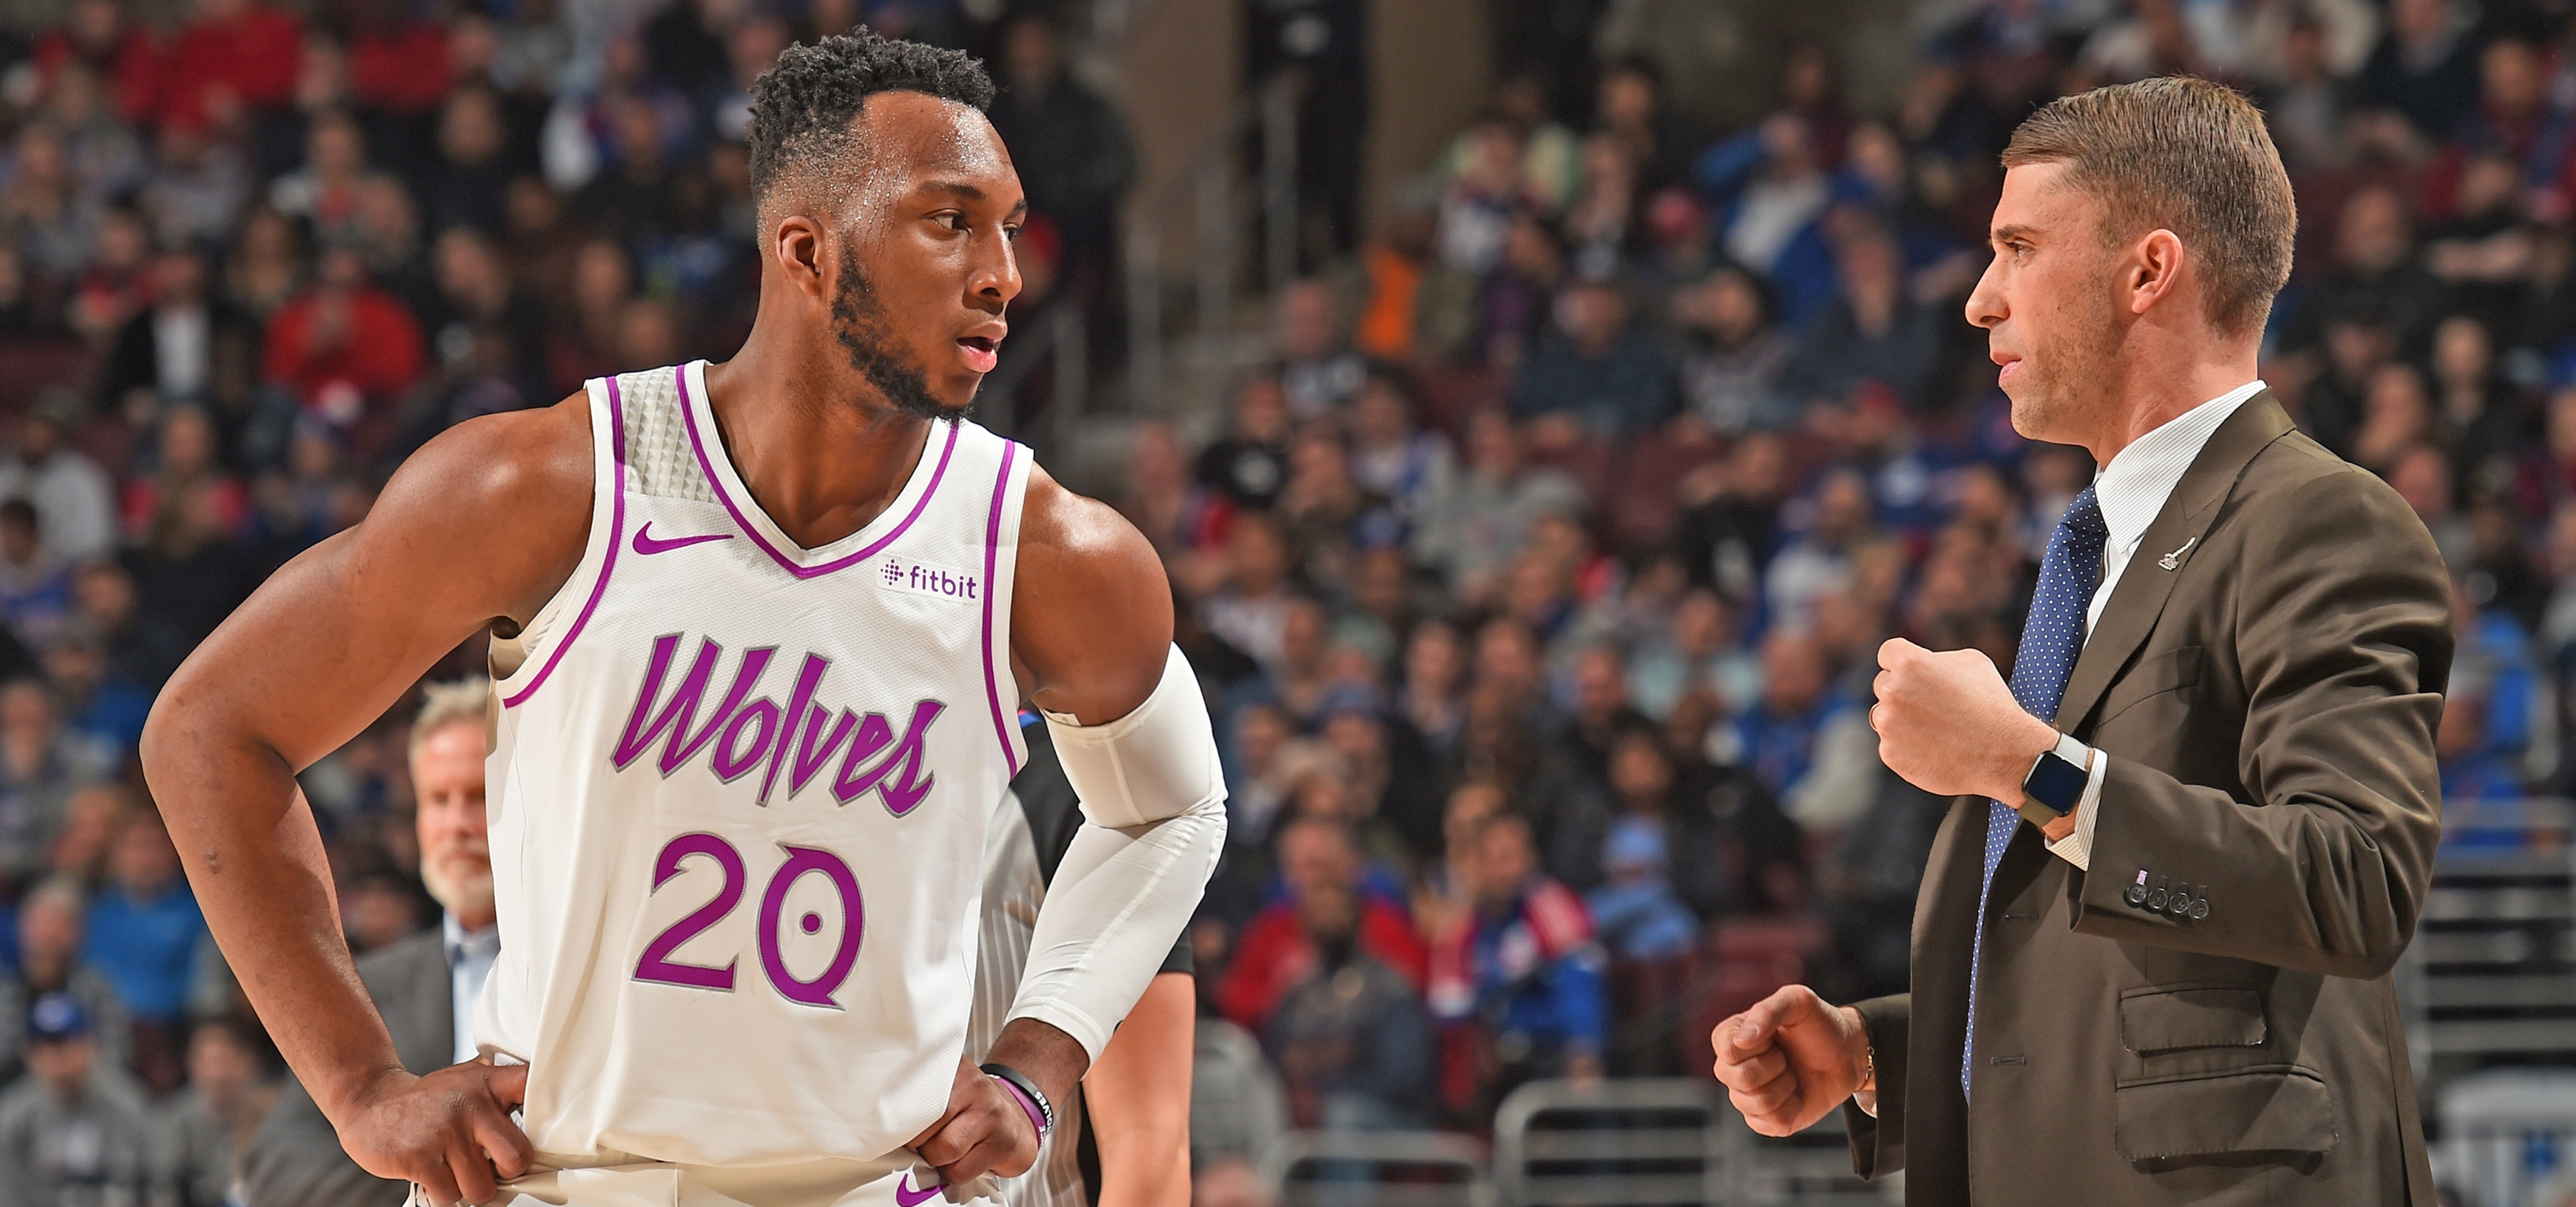 Timberwolves Guard Josh Okogie to Participate in 2019 MTN Dew Ice Rising  Stars as Part of 2019 NBA All-Star Weekend  2d3e69508